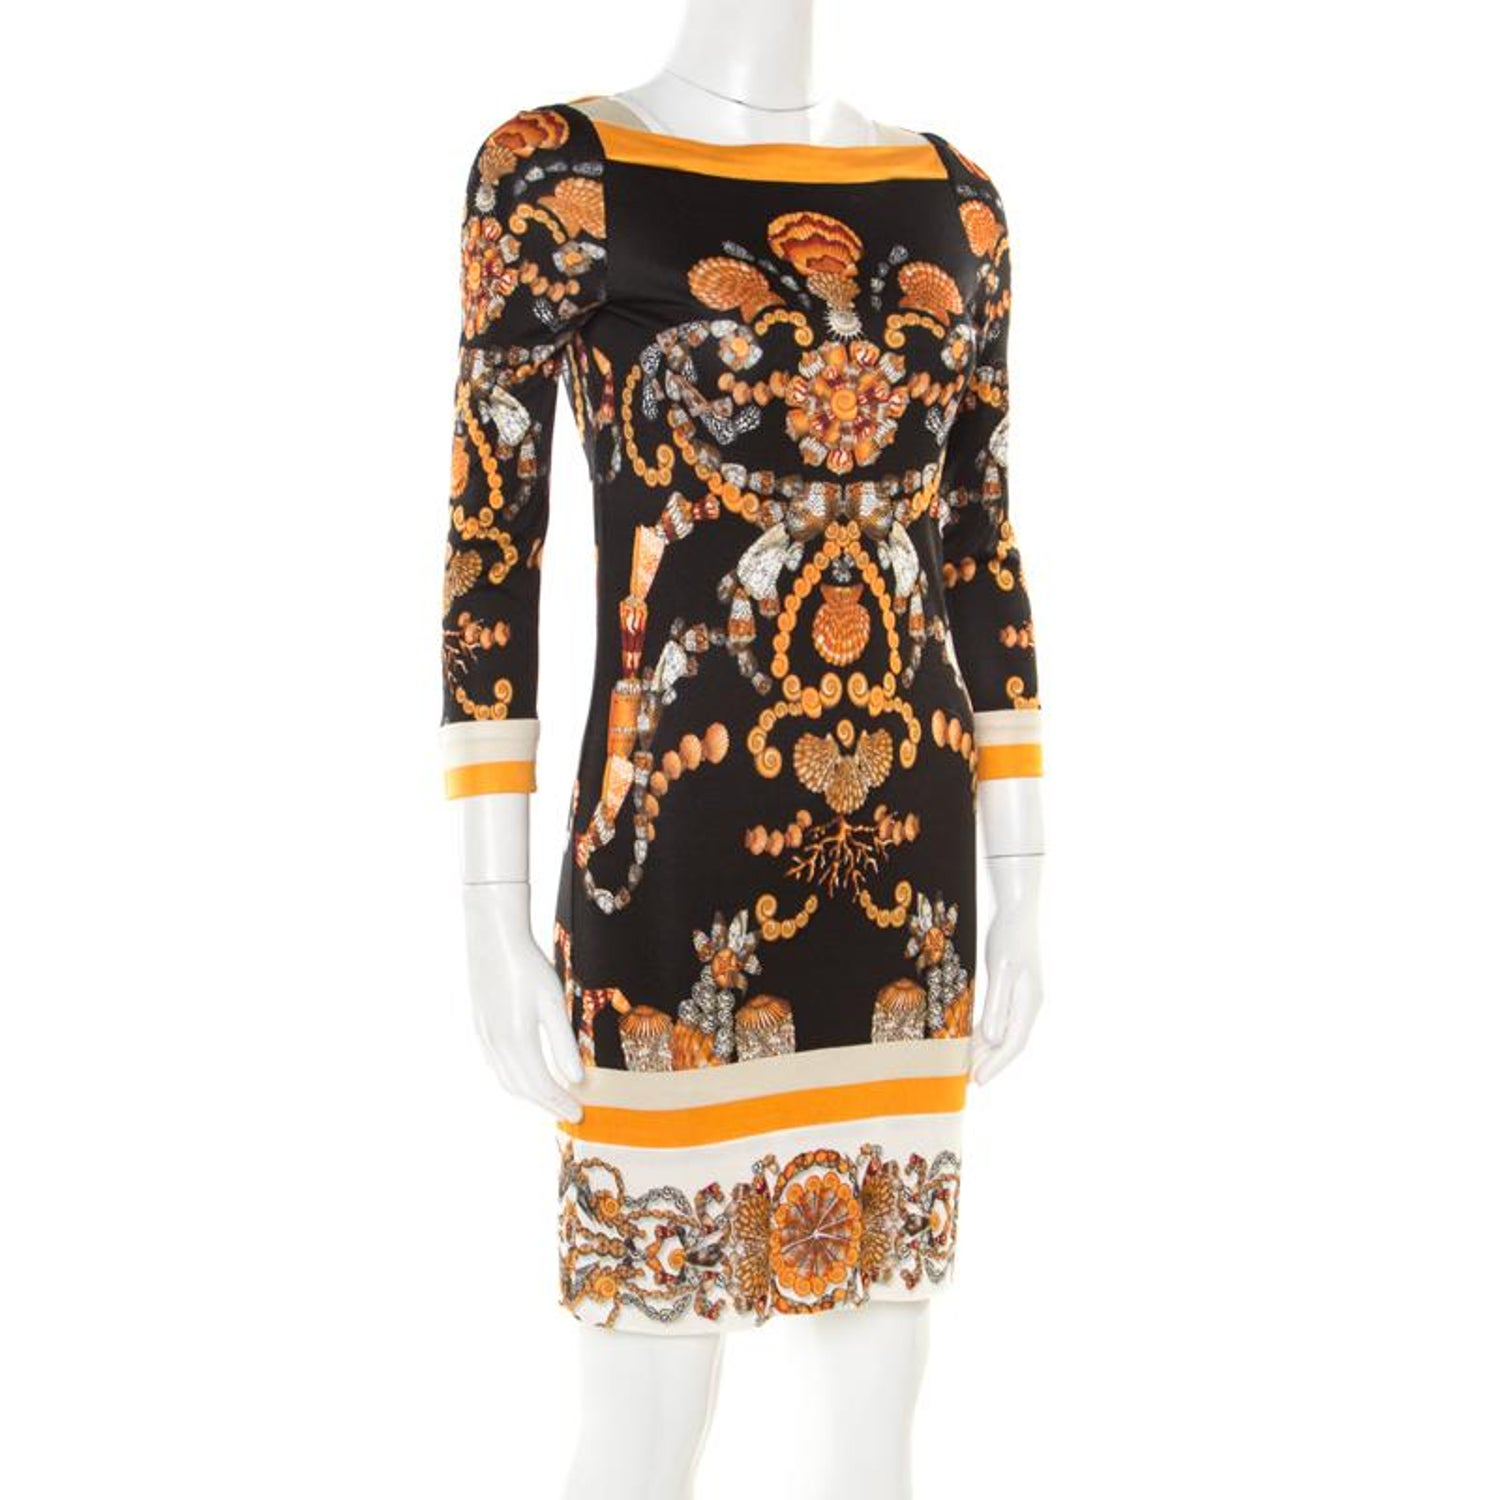 20b0ad515 Gucci Black and Gold Sea Shell Print Jersey Shift Dress S For Sale at  1stdibs